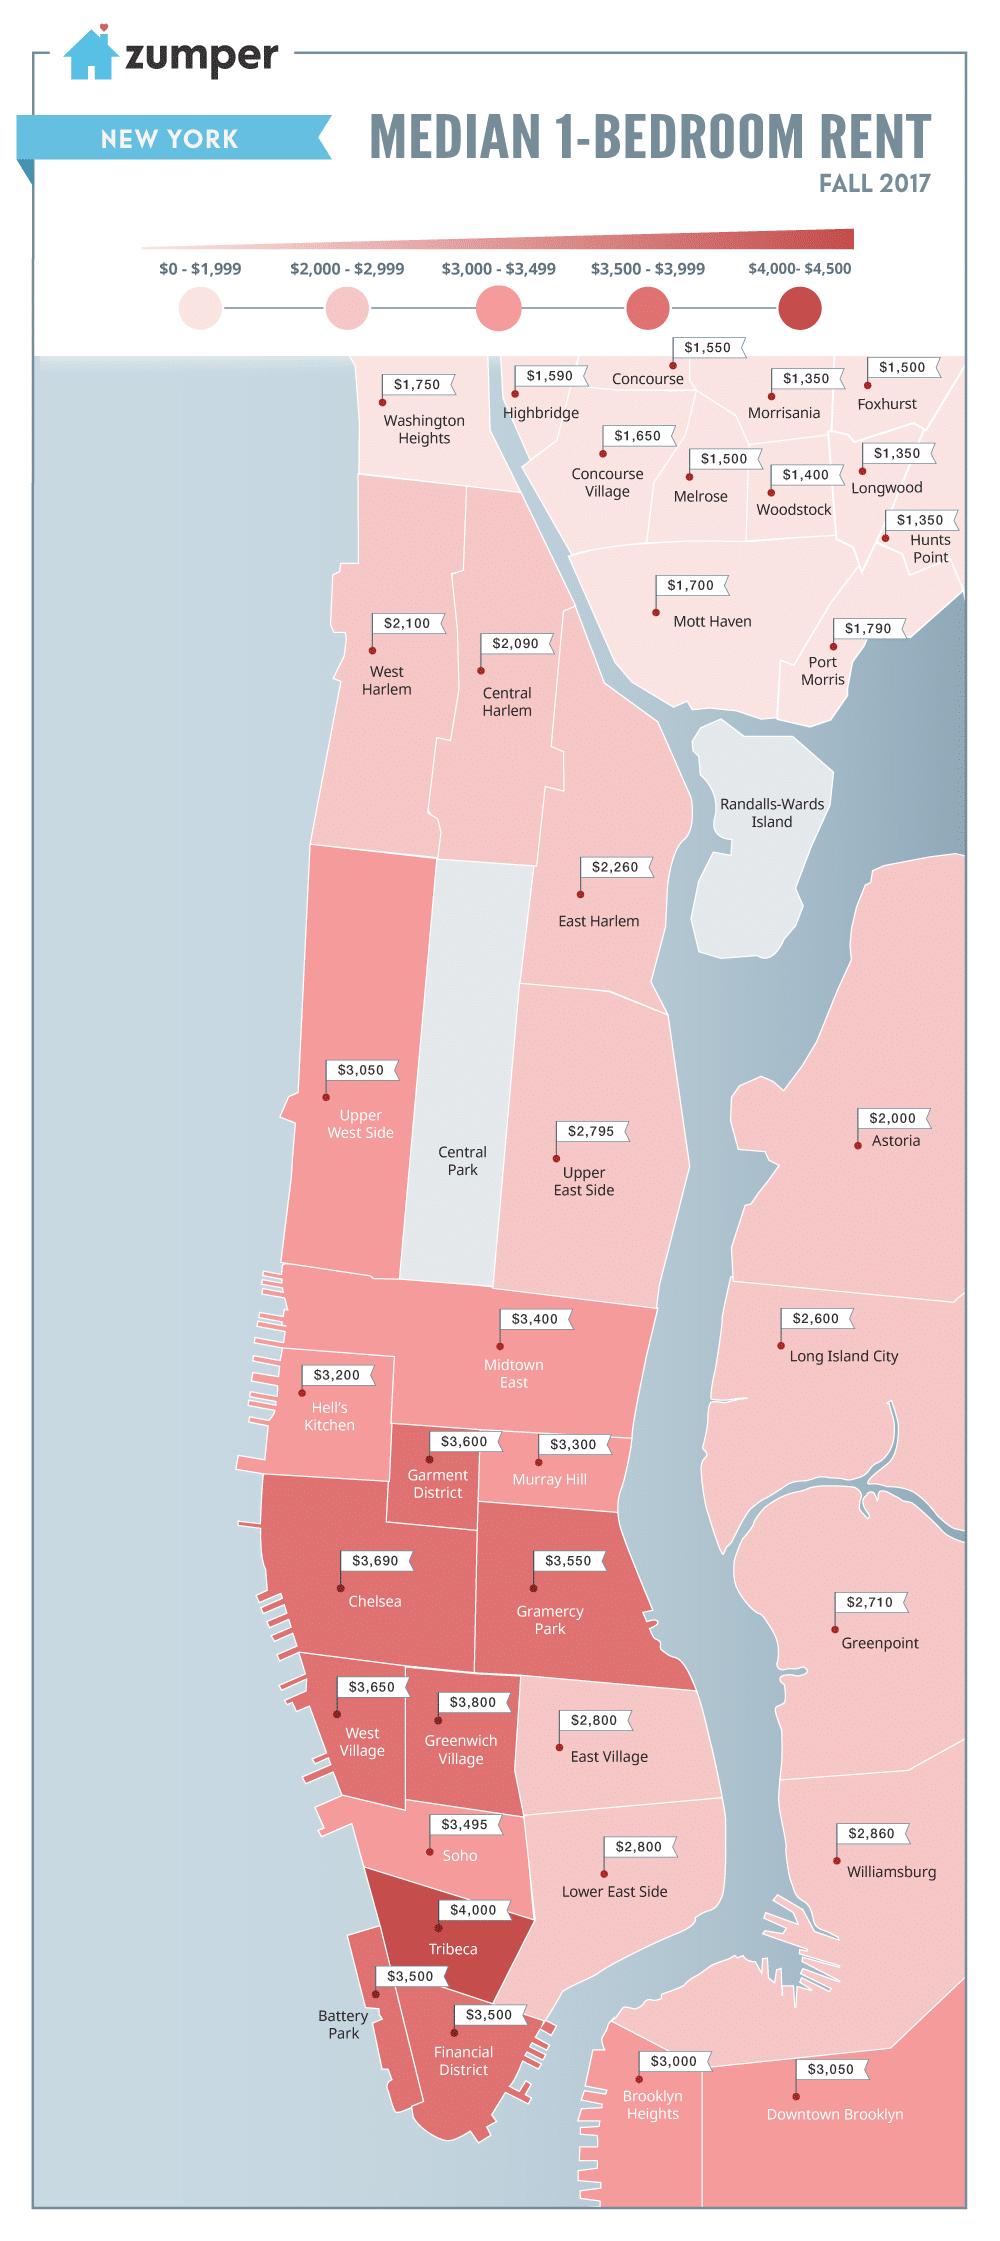 new york city neighborhood rent prices mapped fall 2017